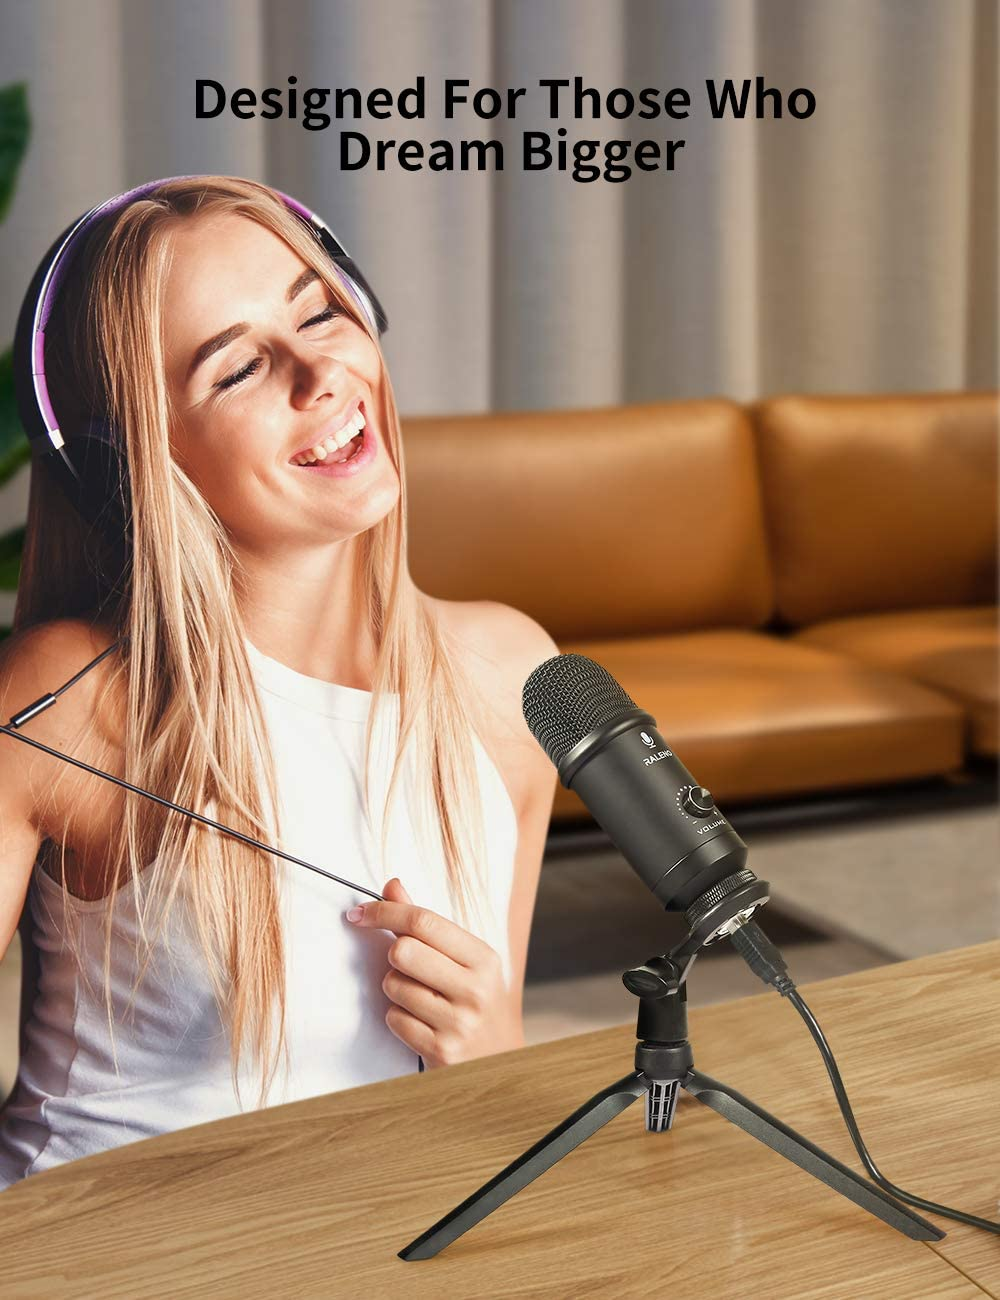 RALENO Professional Studio Cardioid Condenser Mic Kit Compatible with Mac PC Laptop for Skype YouTube Teaching Gaming Recording. USB Microphone for Computer